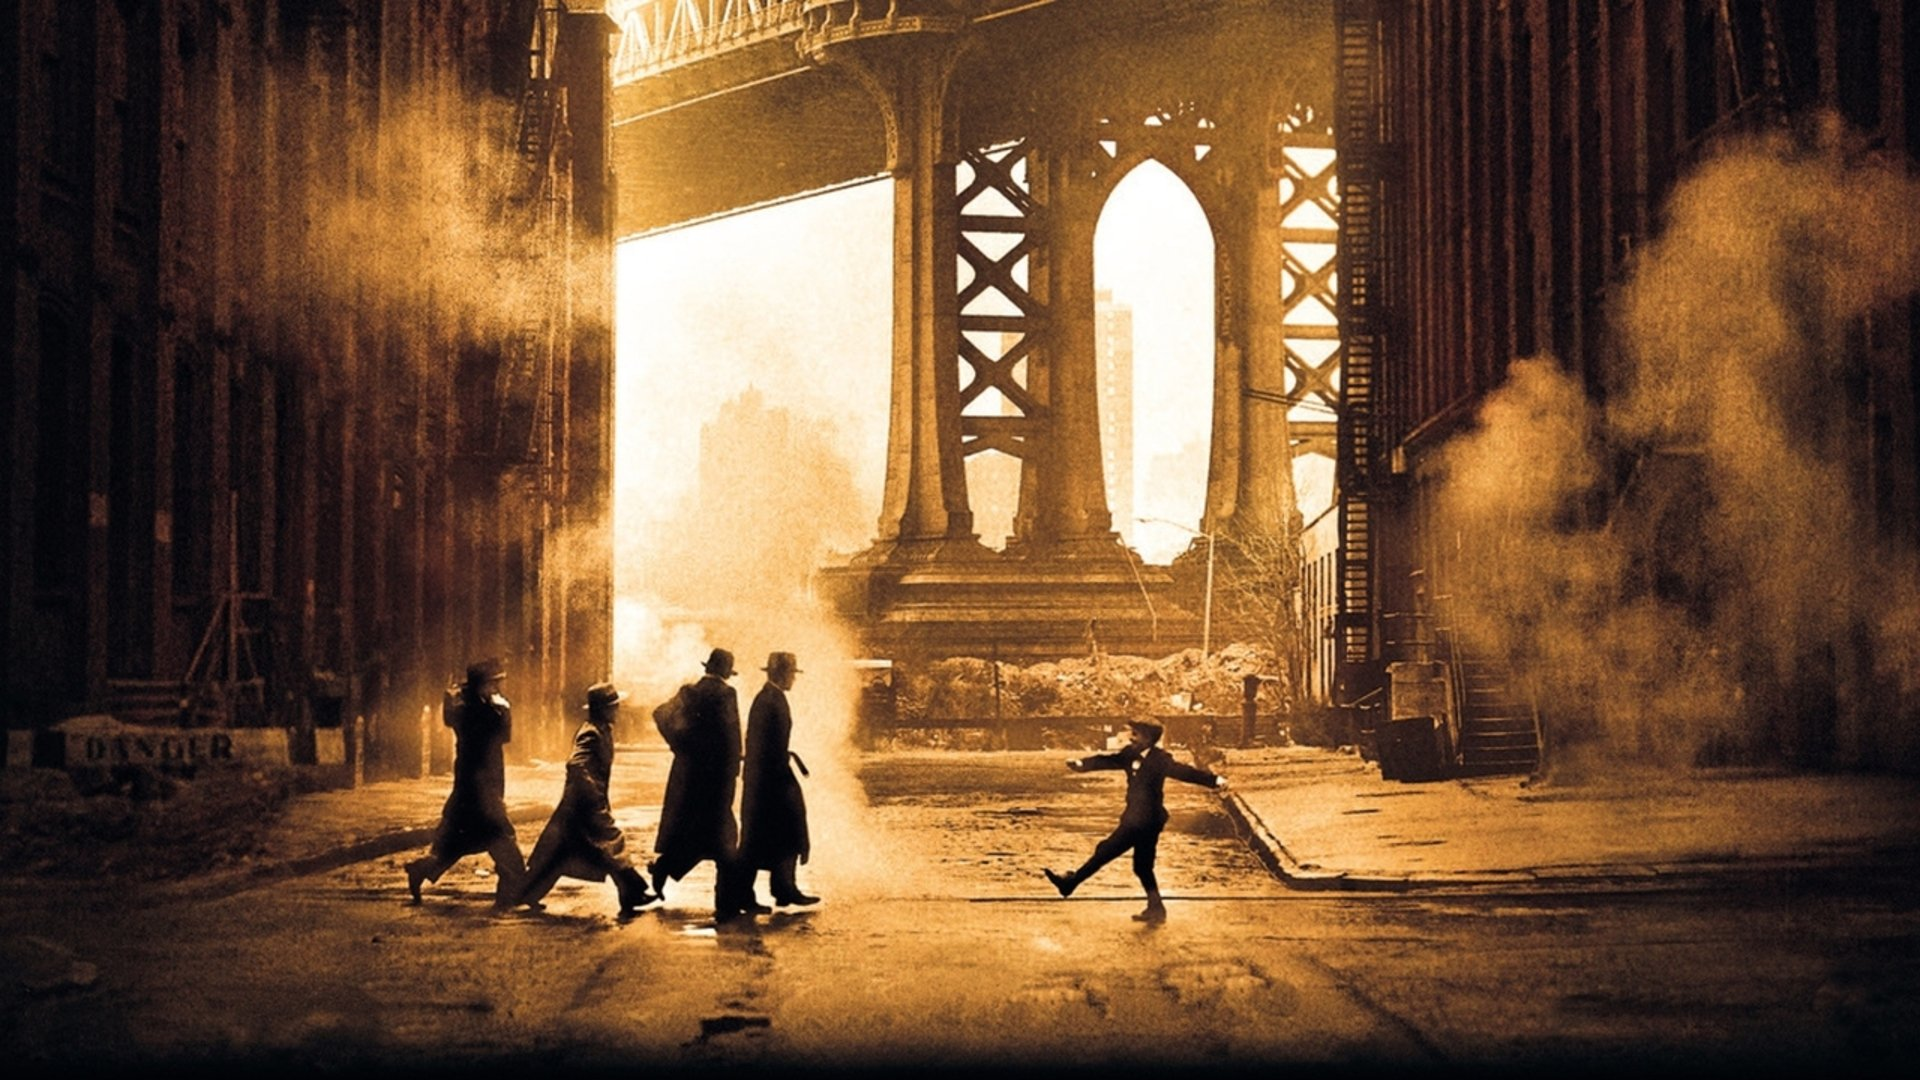 Once Upon a Time in America - The boys' gang roams the streets of the Lower East side of New York in the 1920s